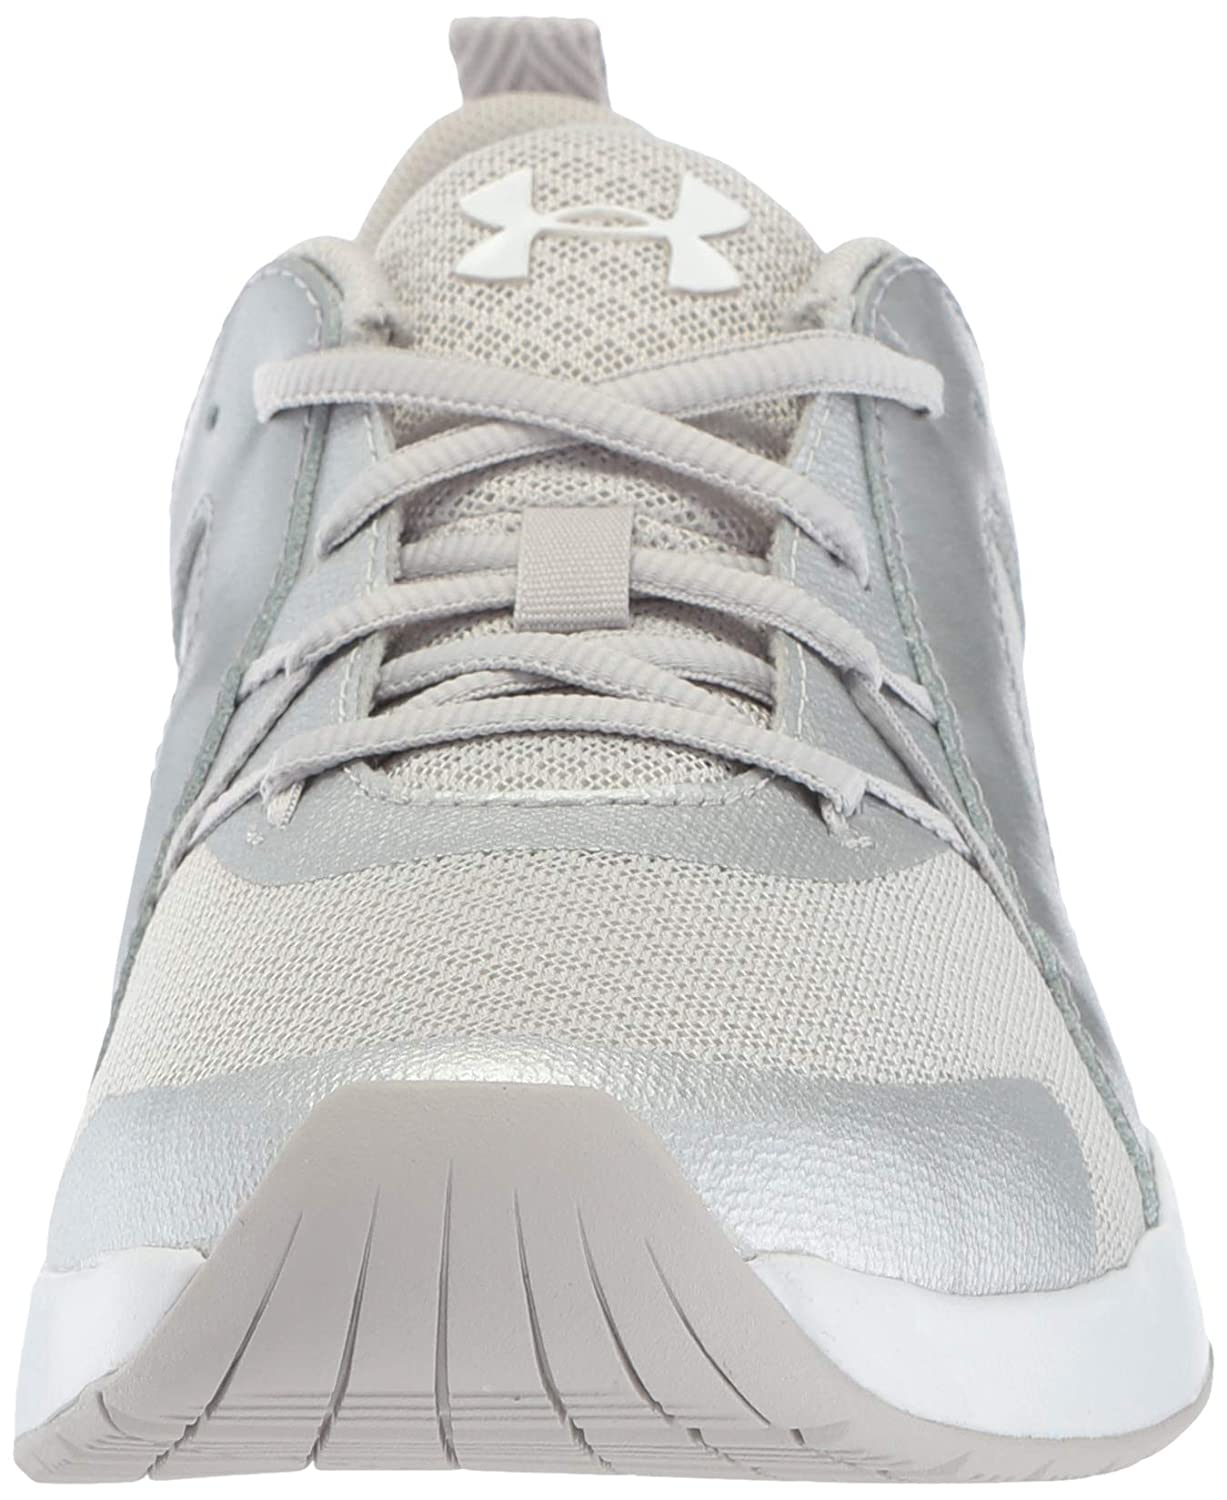 Under Armour Womens Intent Trainer Sneaker